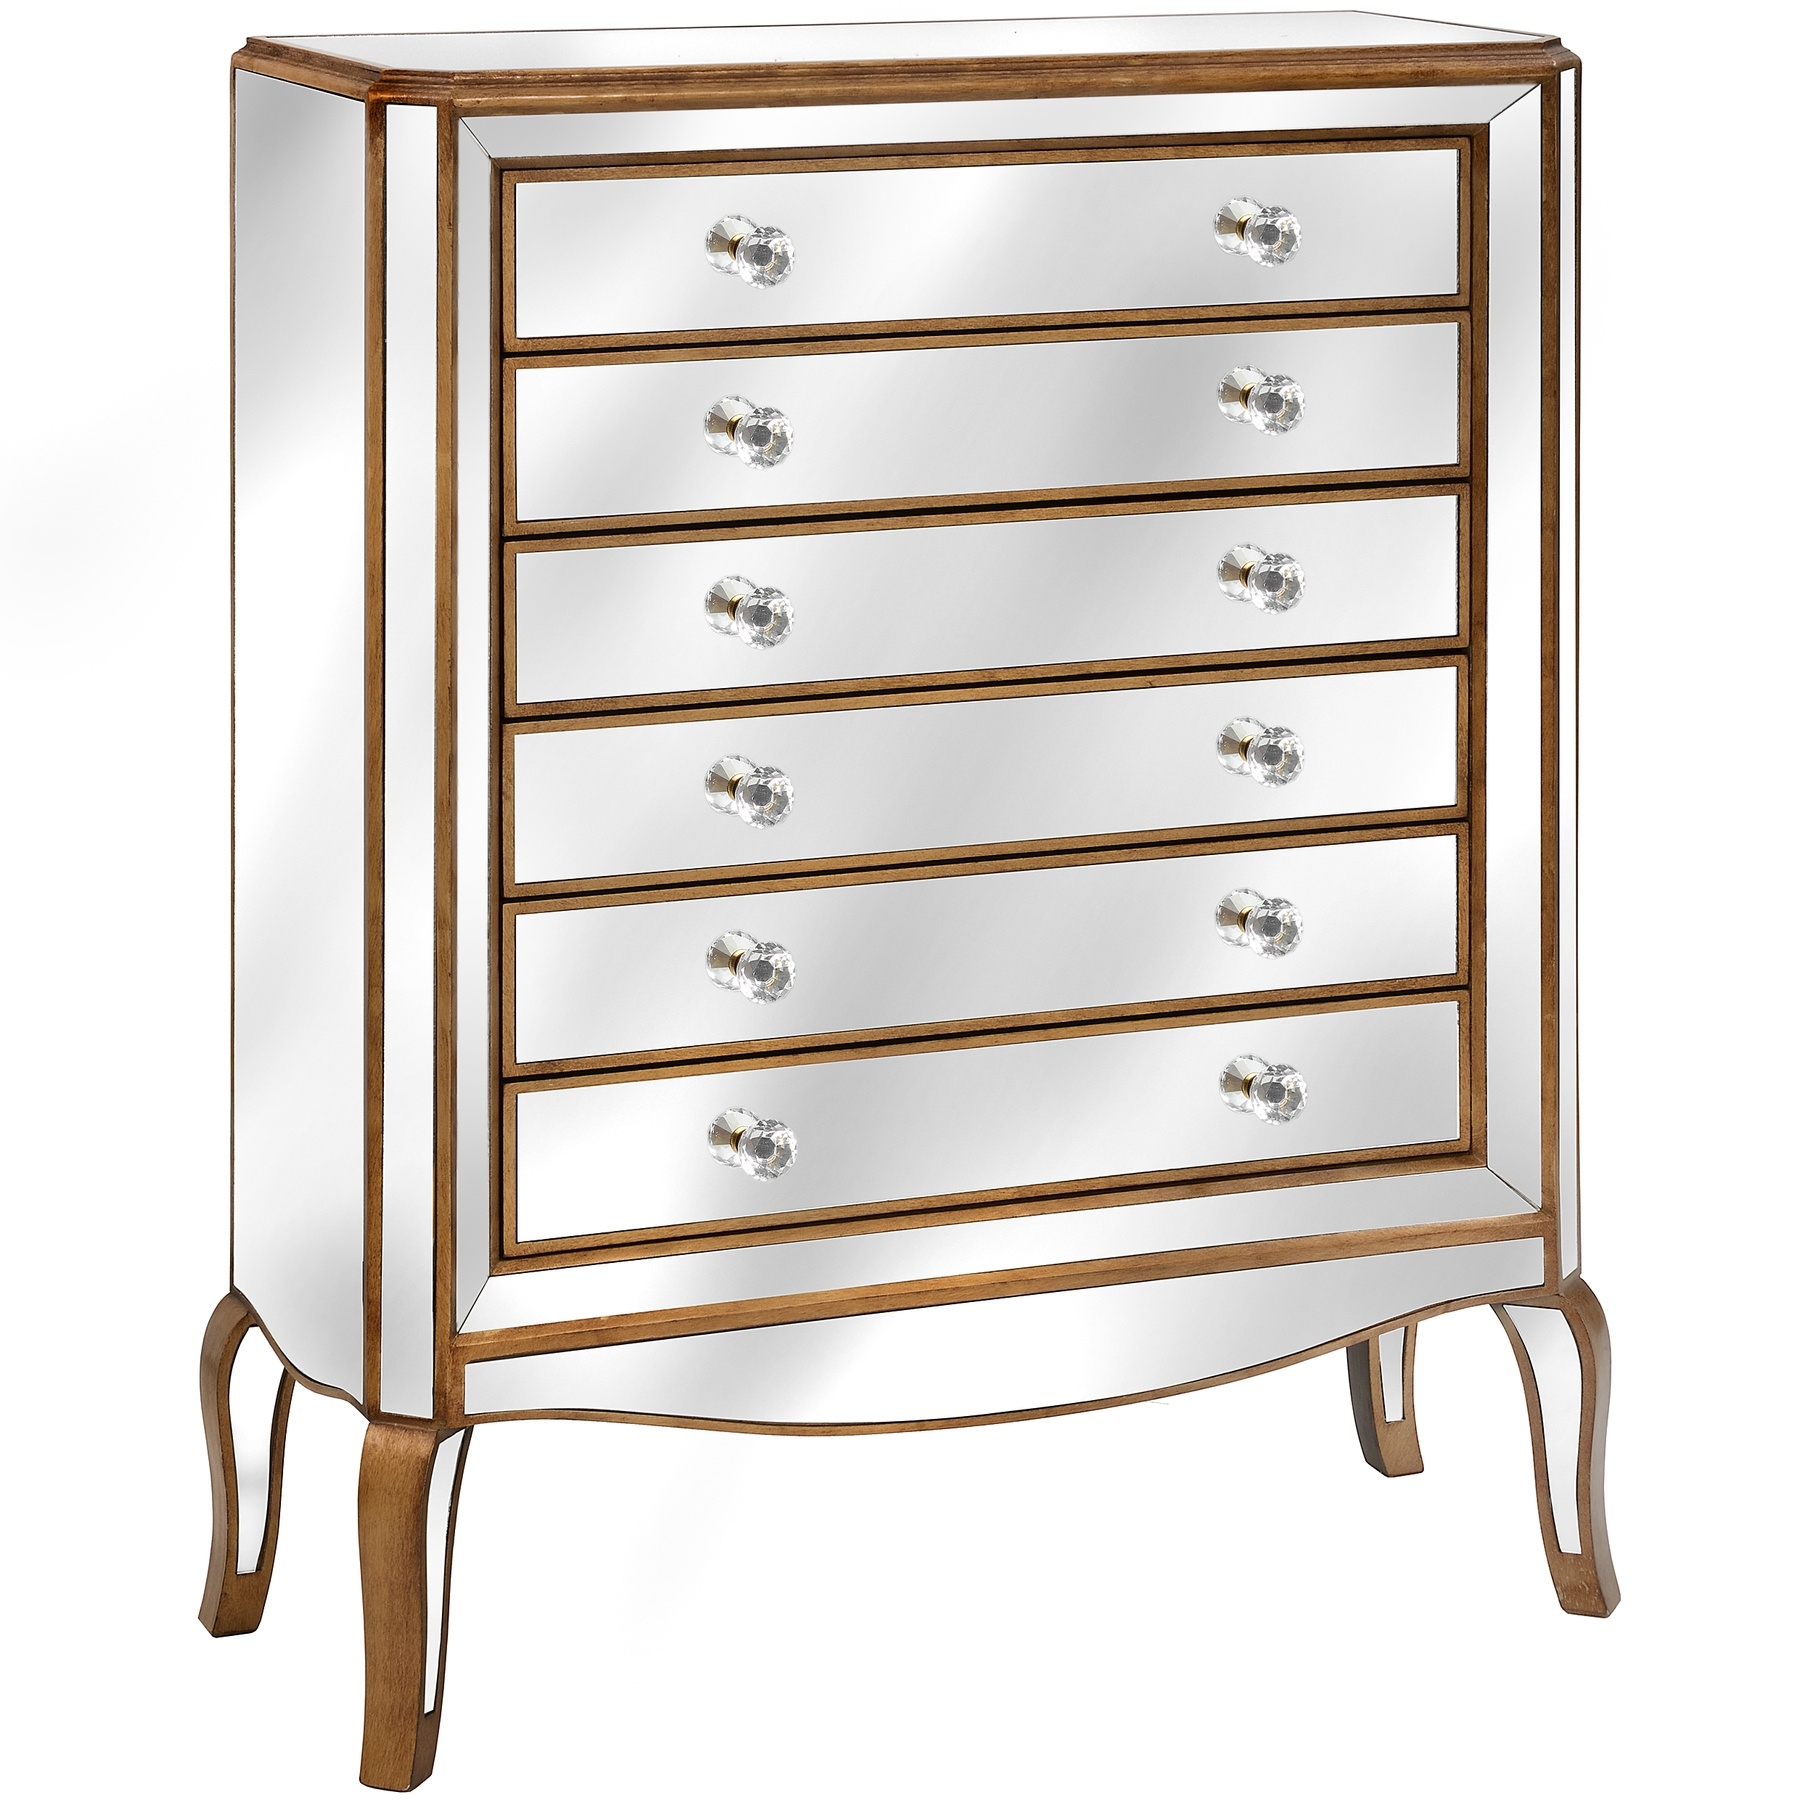 Venetian Mirrored 6 Drawer Tall Boy From Baytree Interiors Regarding Venetian Mirrored Chest Of Drawers (Image 12 of 15)